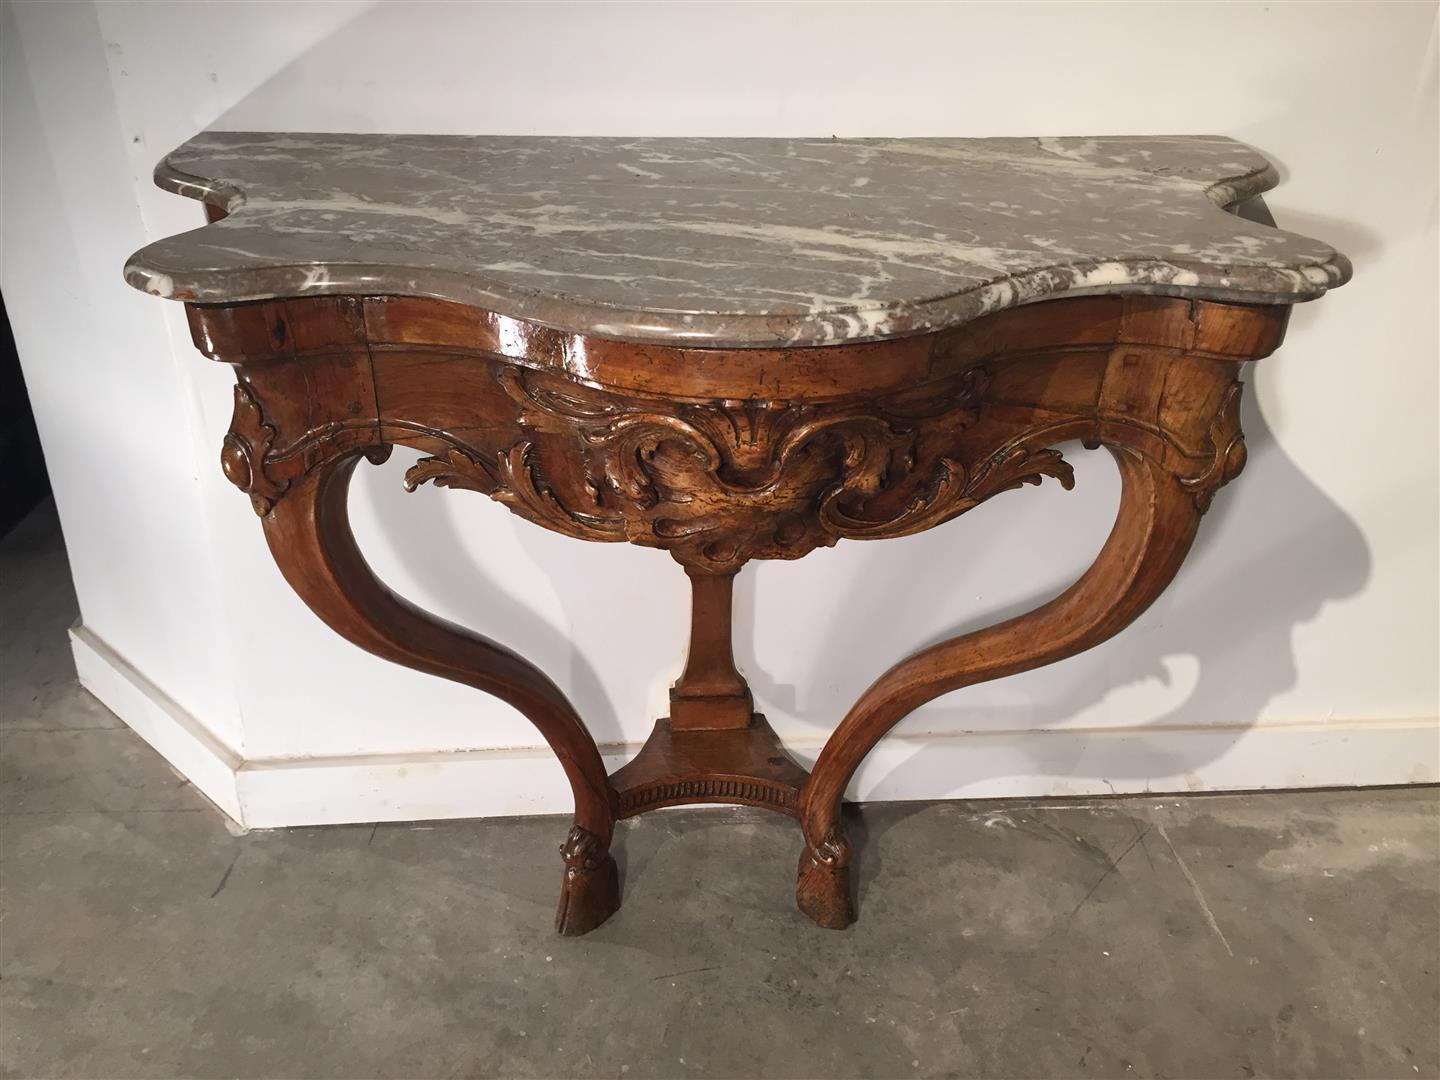 A Beautiful French Marble Topped Natural Wood Console from the Regence Period (1715-1723)